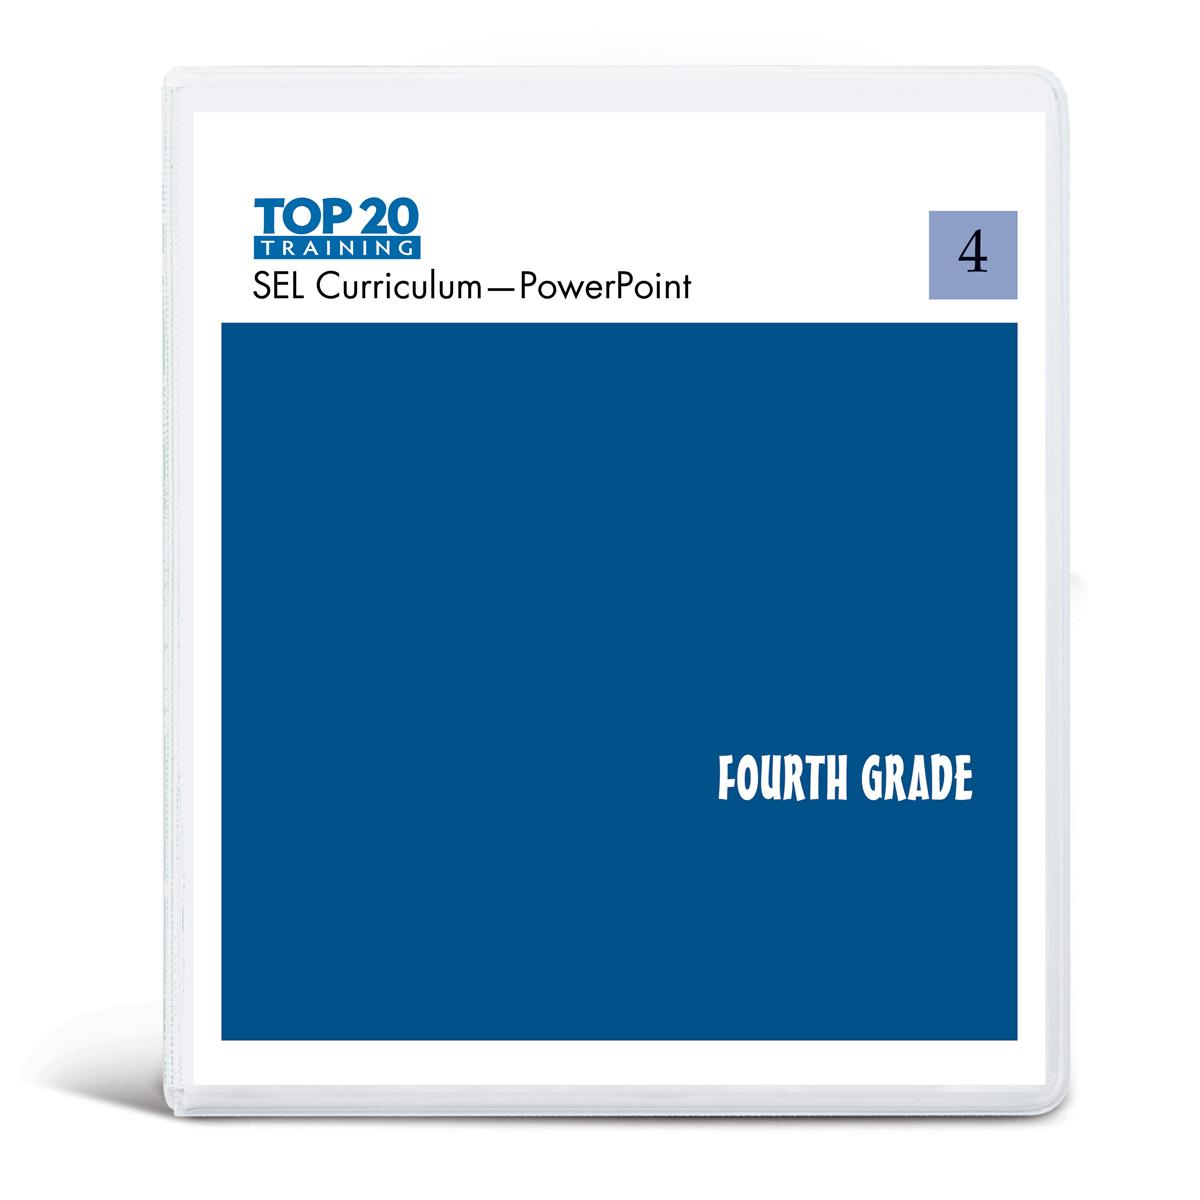 Top 20 teachers PowerPoint curriculum for fourth grade